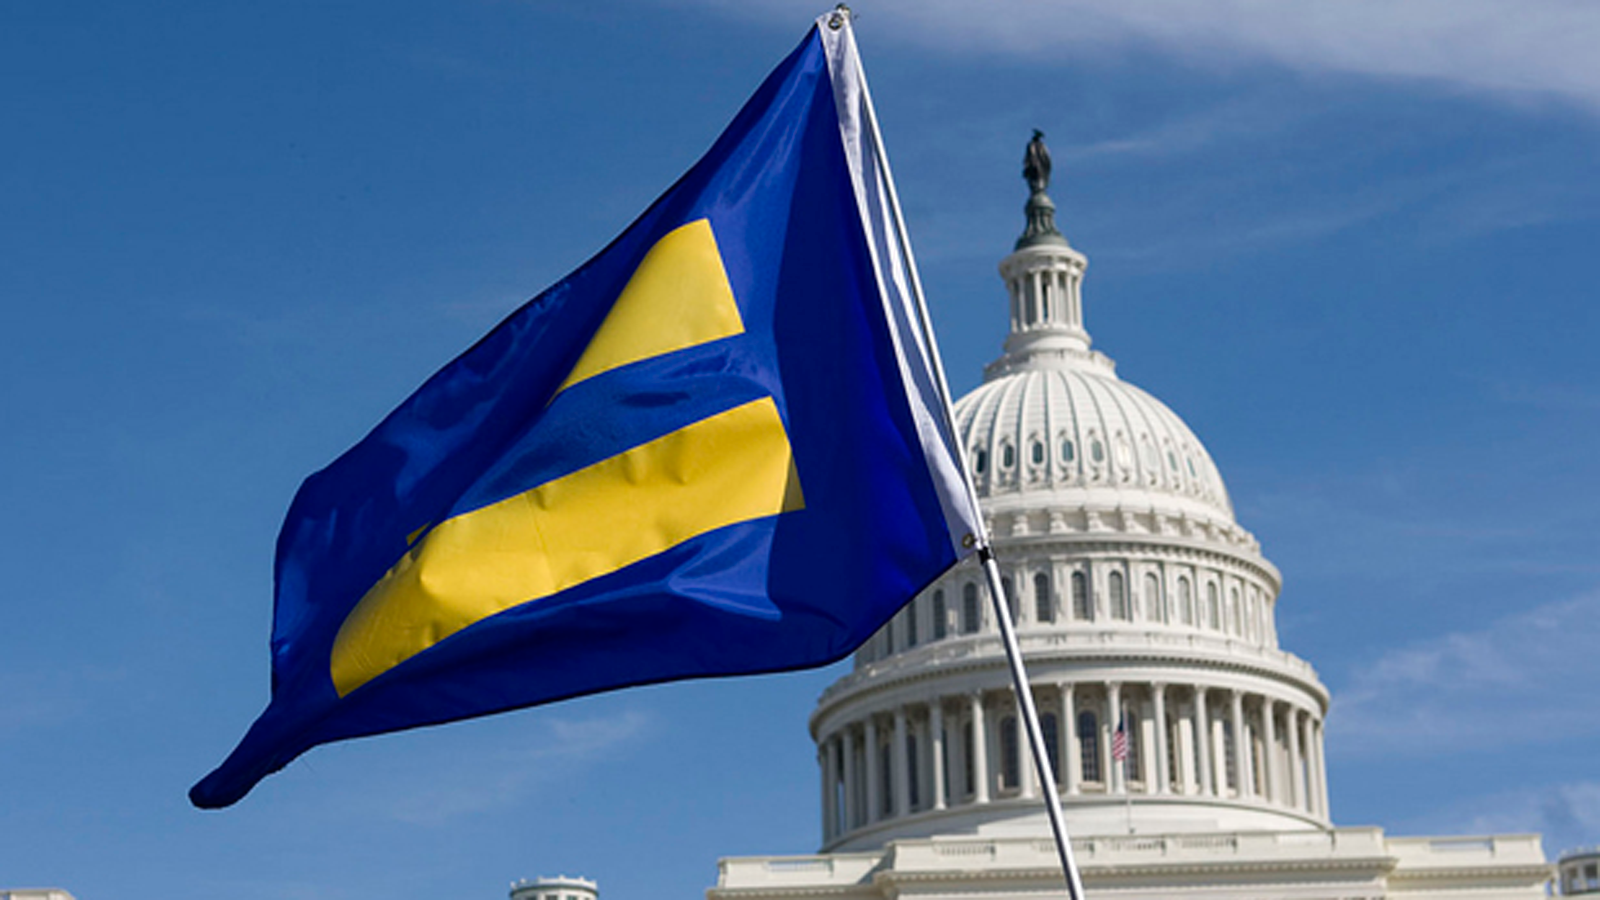 New Nonpartisan Poll Shows LGBTQ Equality is a Winning Message